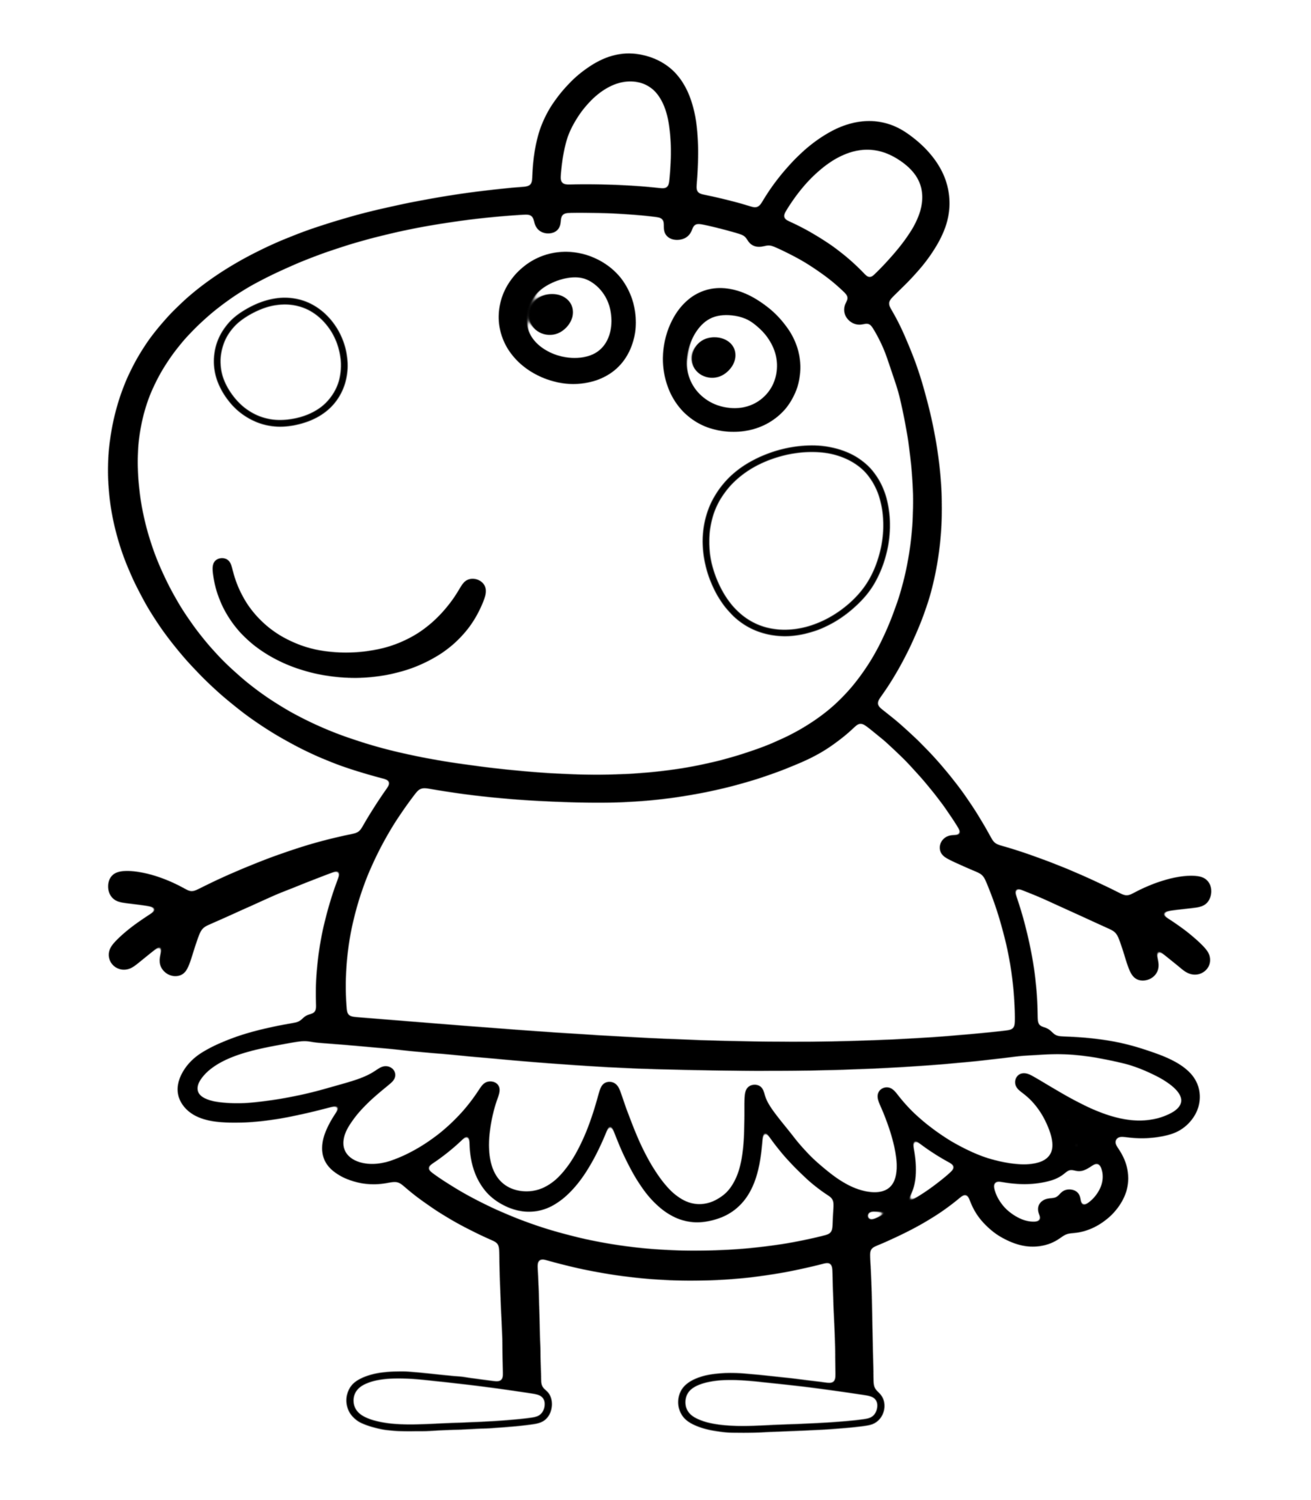 Colouring in peppa pig - Find This Pin And More On Peppa Pig Color Pages